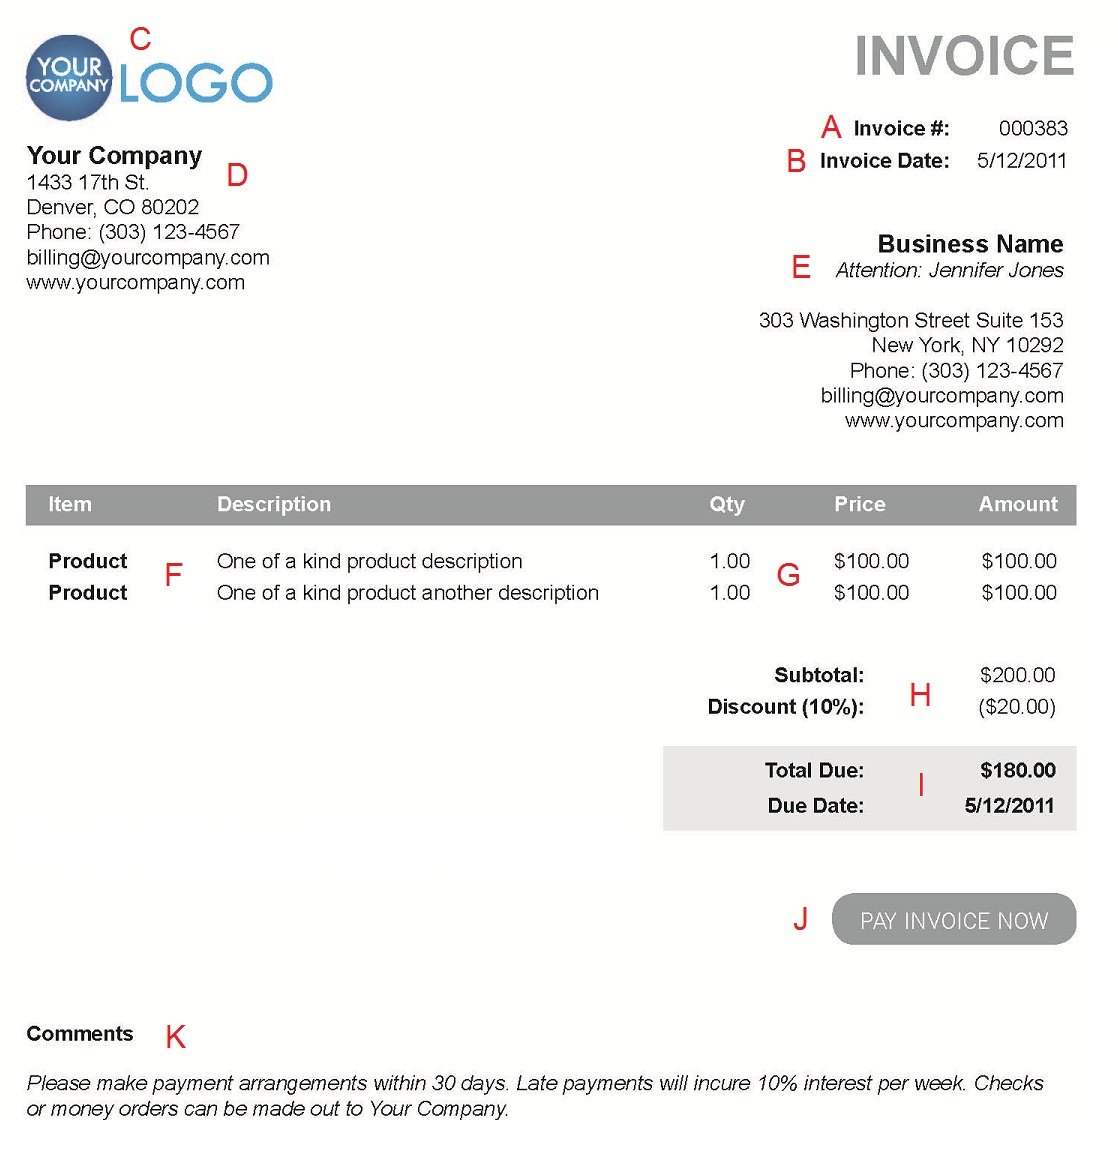 Pigbrotherus  Surprising The  Different Sections Of An Electronic Payment Invoice With Foxy A  With Amusing Zoho Invoice Free Also Services Invoice Template In Addition Invoice What Is And Contractor Invoice Form As Well As Contractor Invoice Software Additionally Website Invoice From Paysimplecom With Pigbrotherus  Foxy The  Different Sections Of An Electronic Payment Invoice With Amusing A  And Surprising Zoho Invoice Free Also Services Invoice Template In Addition Invoice What Is From Paysimplecom